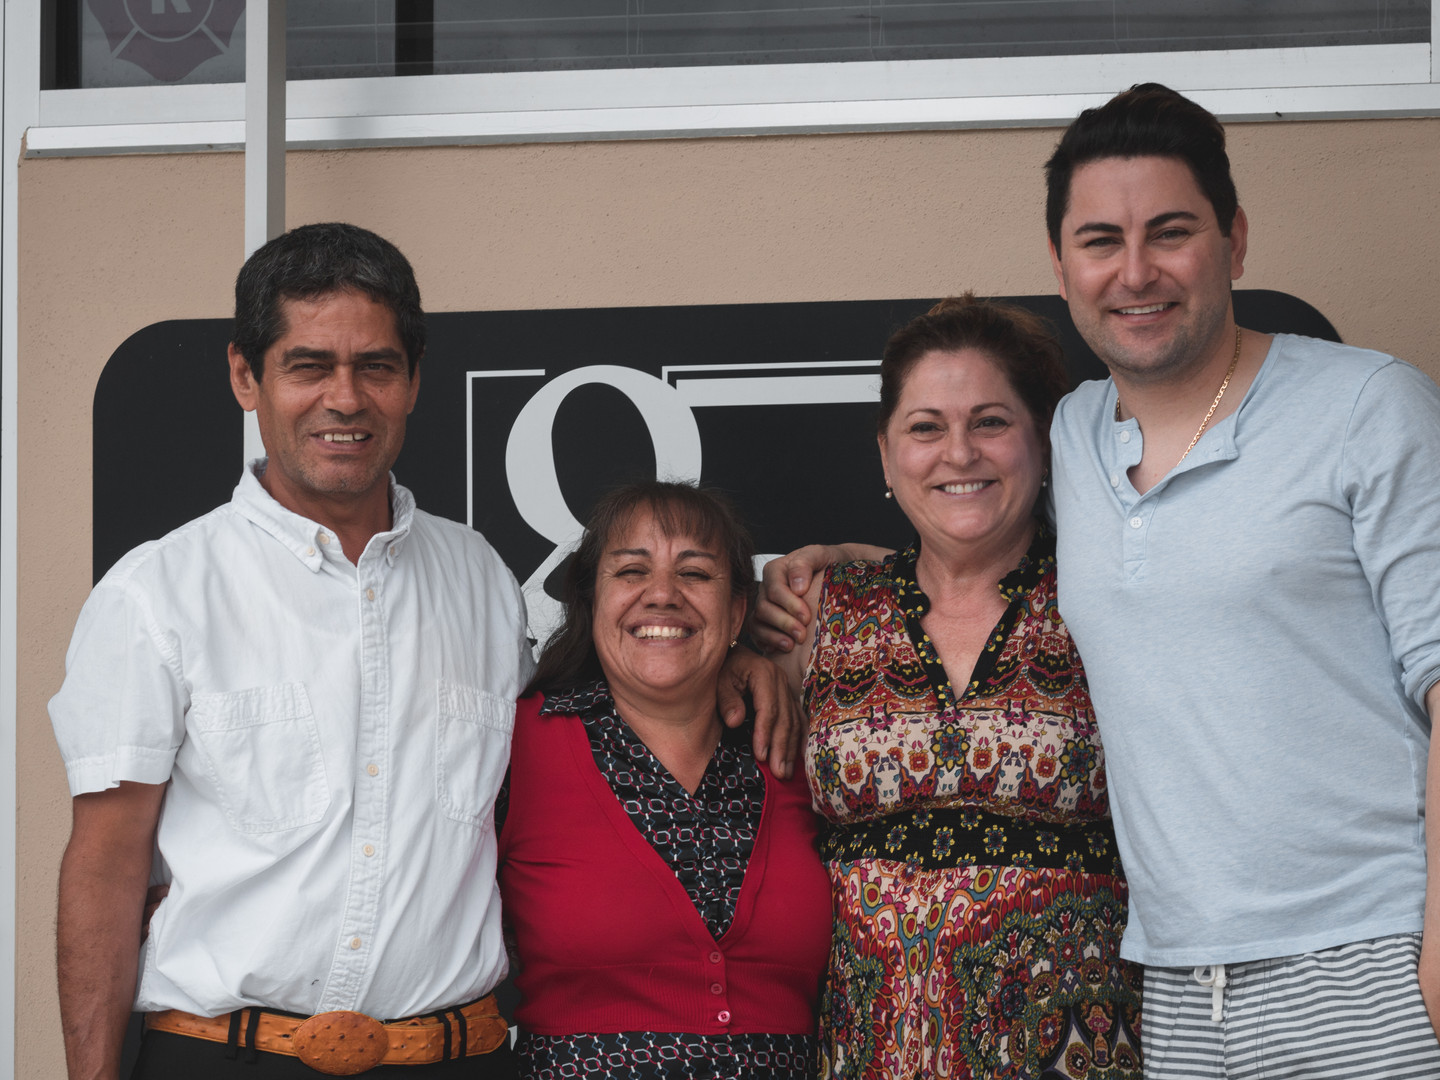 From Left to Right: Roberto Guido, Ana Rosa Guido, Paula Recca, Vincet Recca